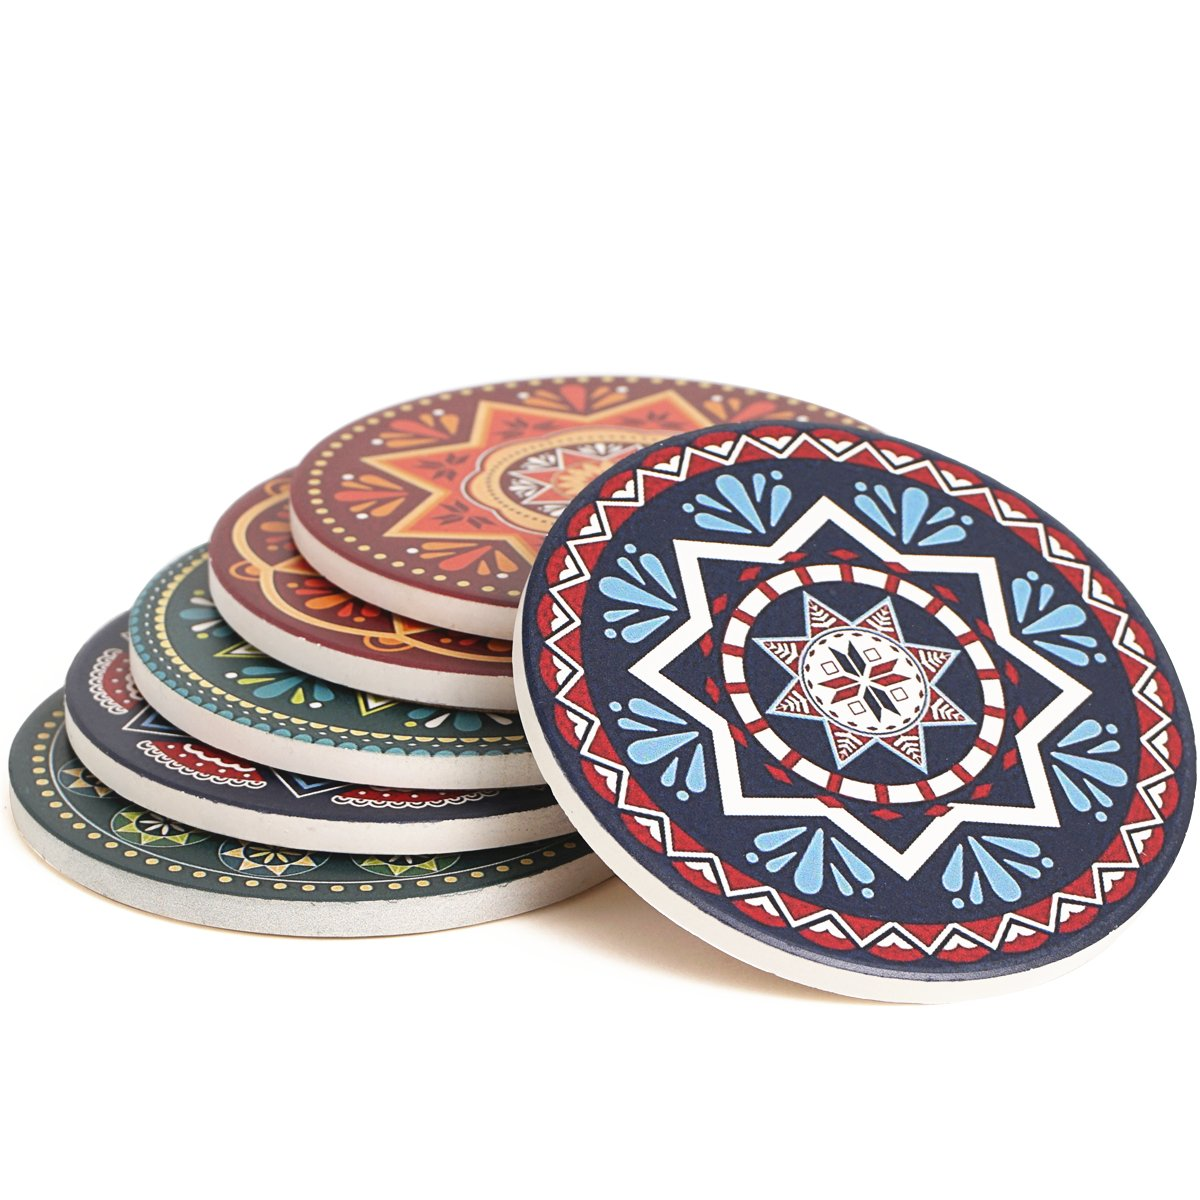 ENKORE Absorbent Coasters For Drinks - 6 Pretty Mandala Patterns on Big Ceramic Stones with Cork Back, Use as Elegant Home Decor and Save Your Furniture From Damage By Water Stain And Marks, No Holder by Enkore